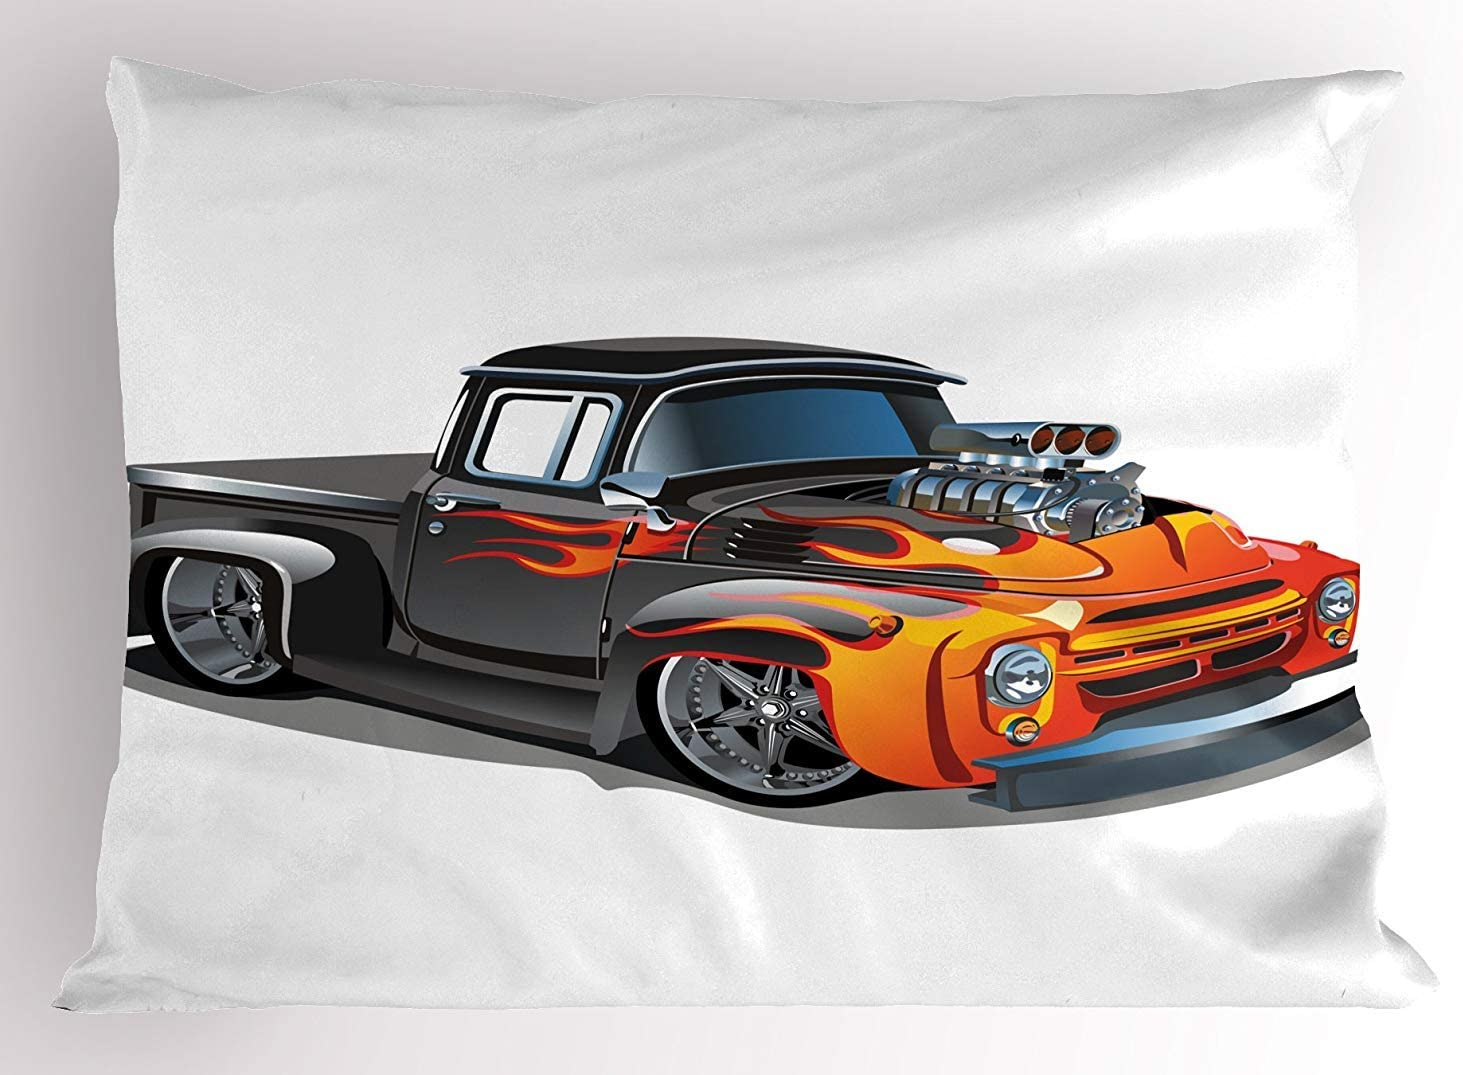 30 X 20 inches Orange Black K0k2t0 Manly Pillow Sham Cartoon Hot-Rod Truck Antique Old Model Automobile Transport Nostalgia Illustration Decorative Standard Queen Size Printed Pillowcase